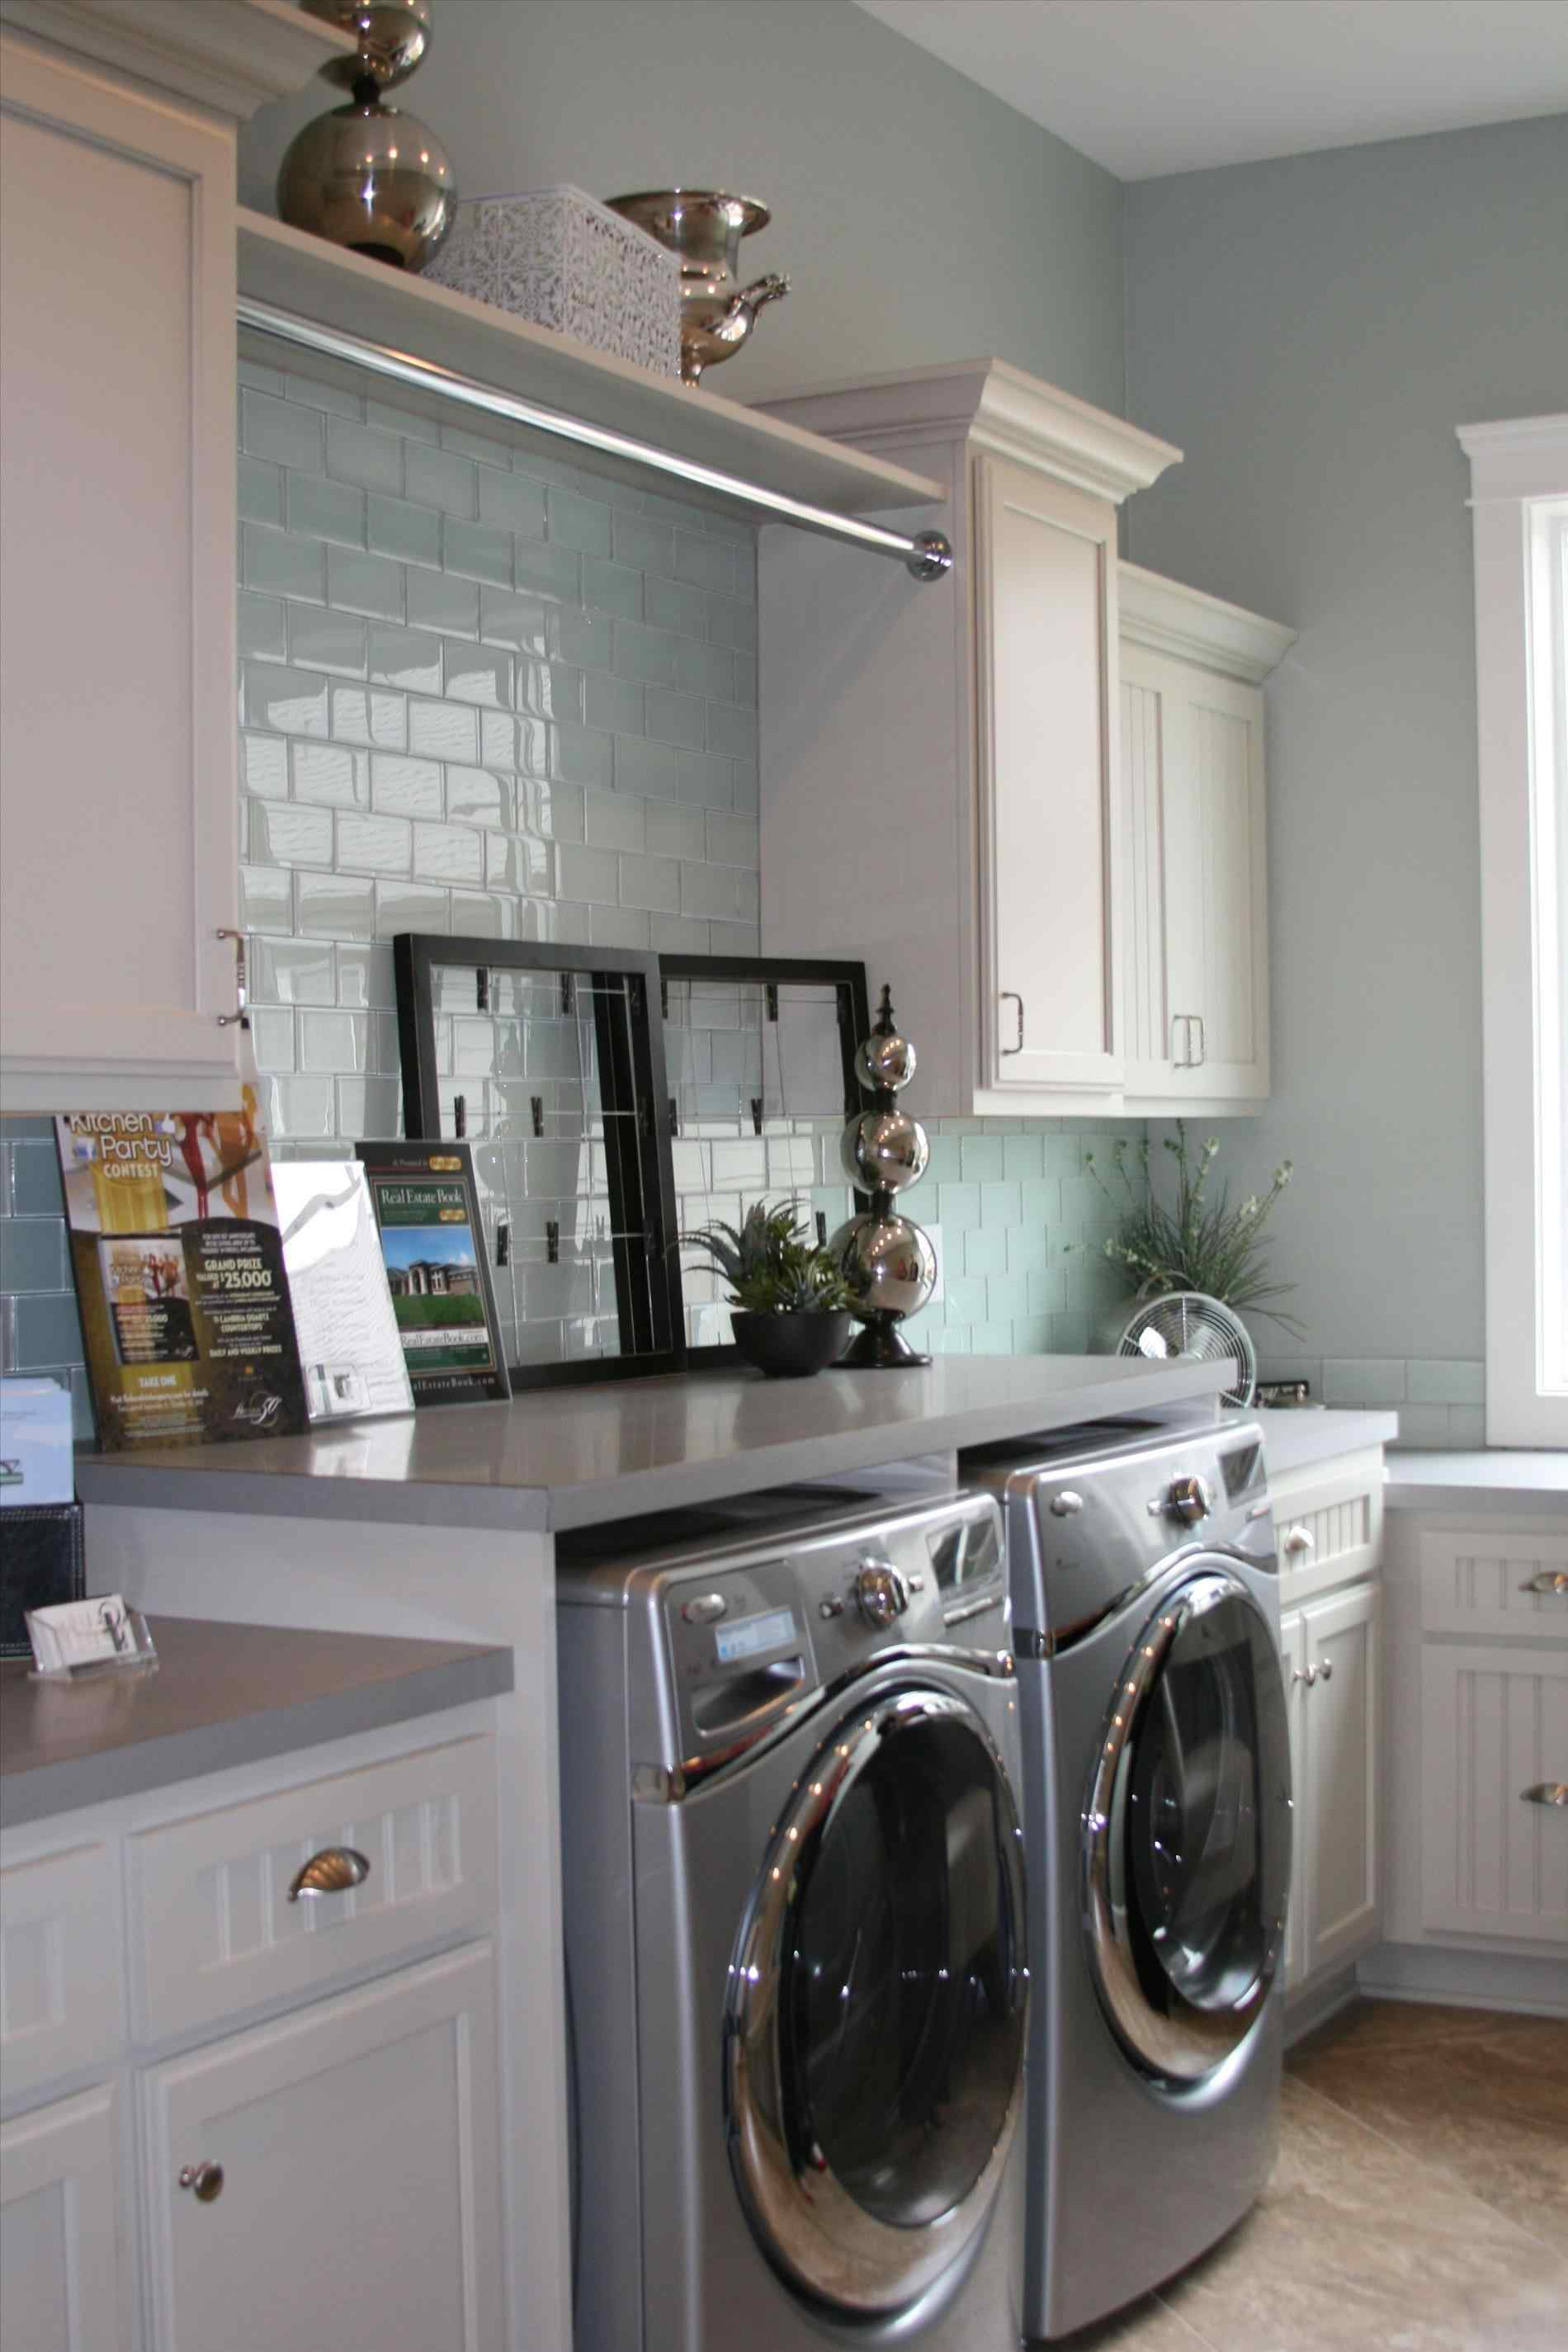 Design Your Own Laundry Room: 25 Best Laundry Room Design Ideas